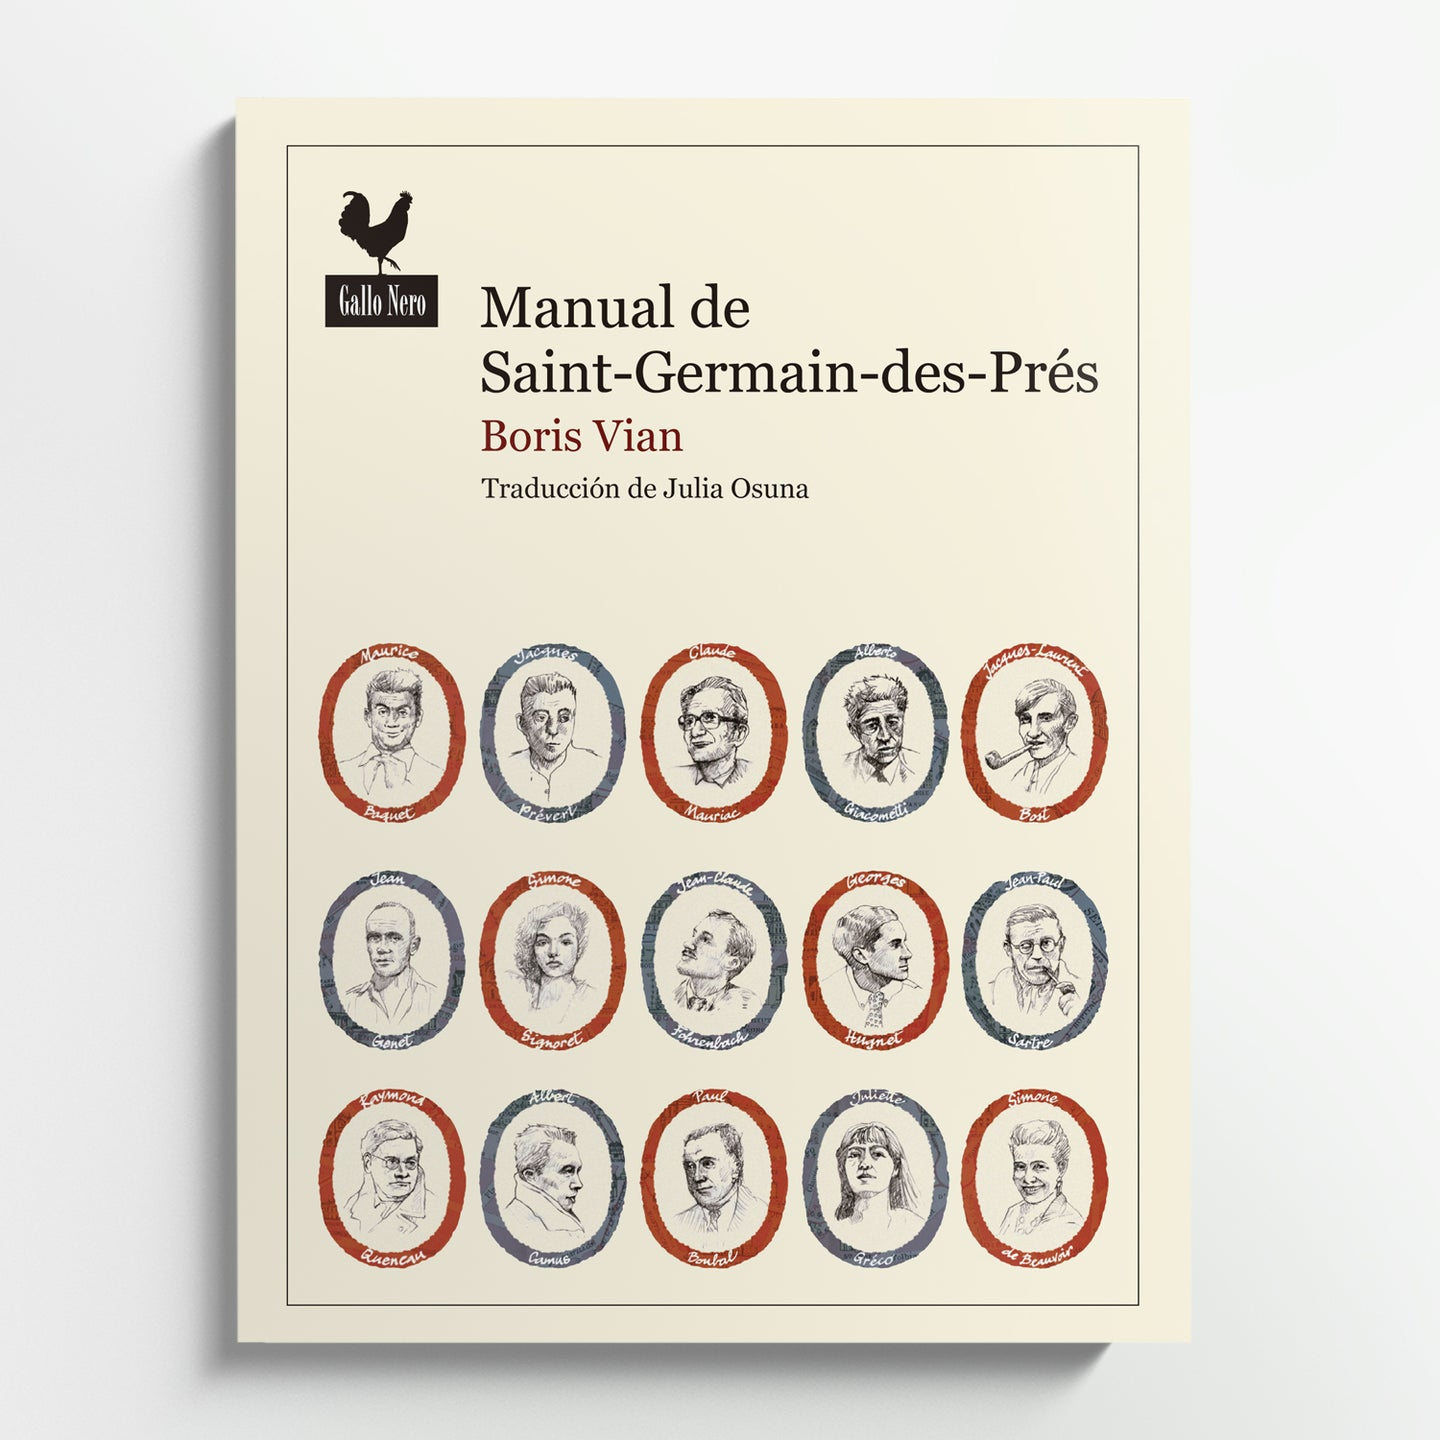 BORIS VIAN | Manual de Saint-Germain-Des-Prés